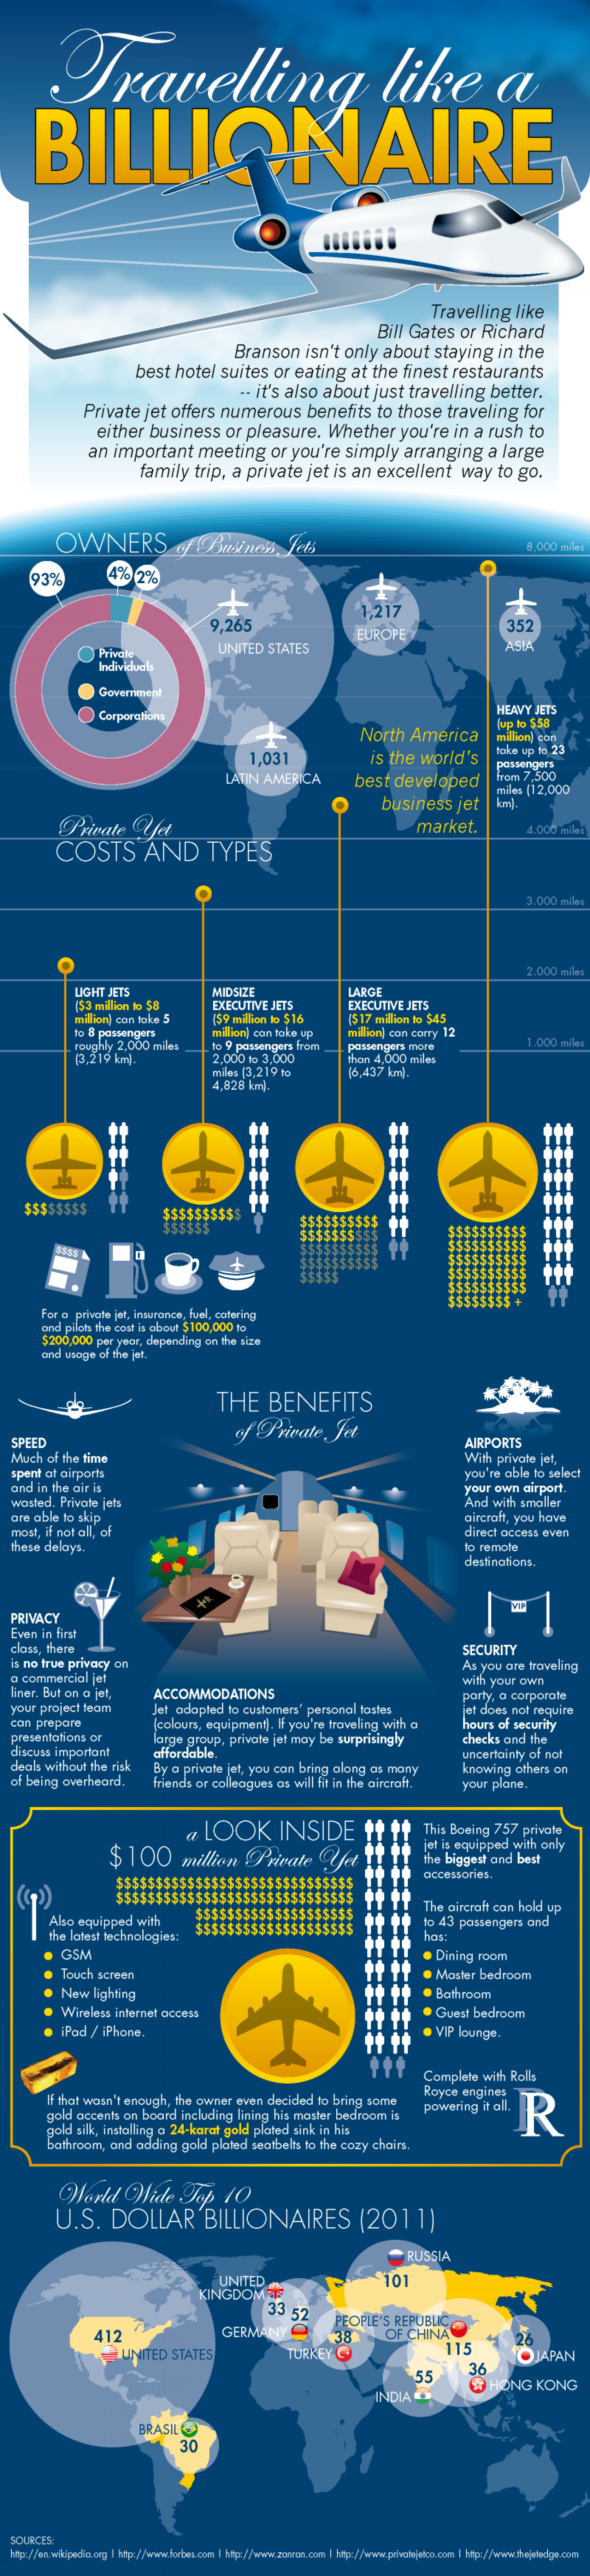 Travelling Like A Billionaire Infographic